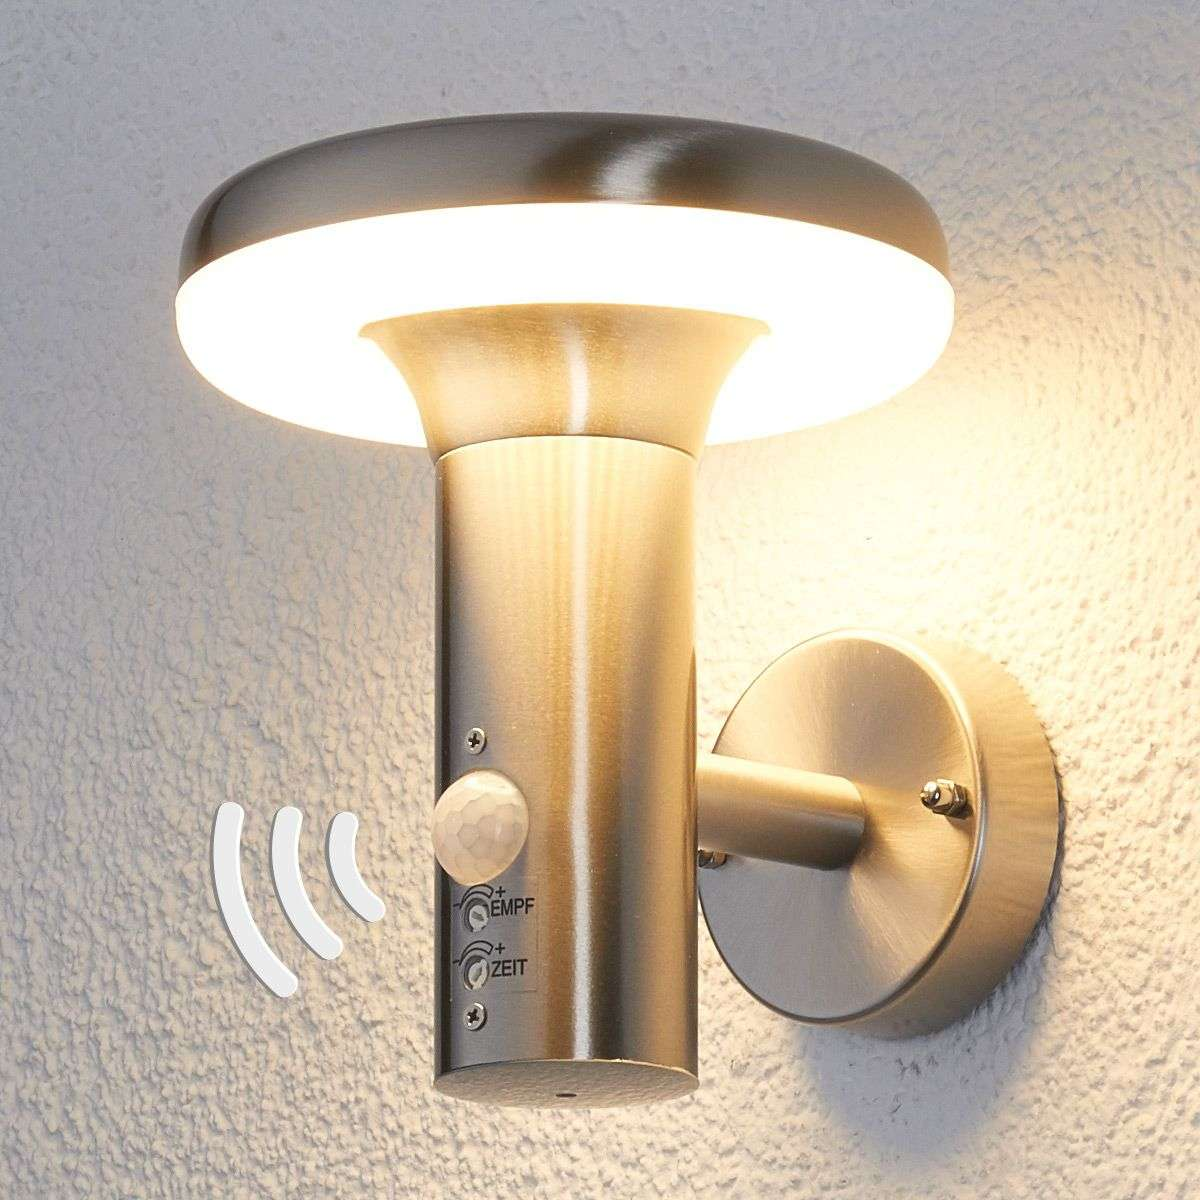 Pepina motion sensor led outdoor wall light for Exterior wall light with motion sensor